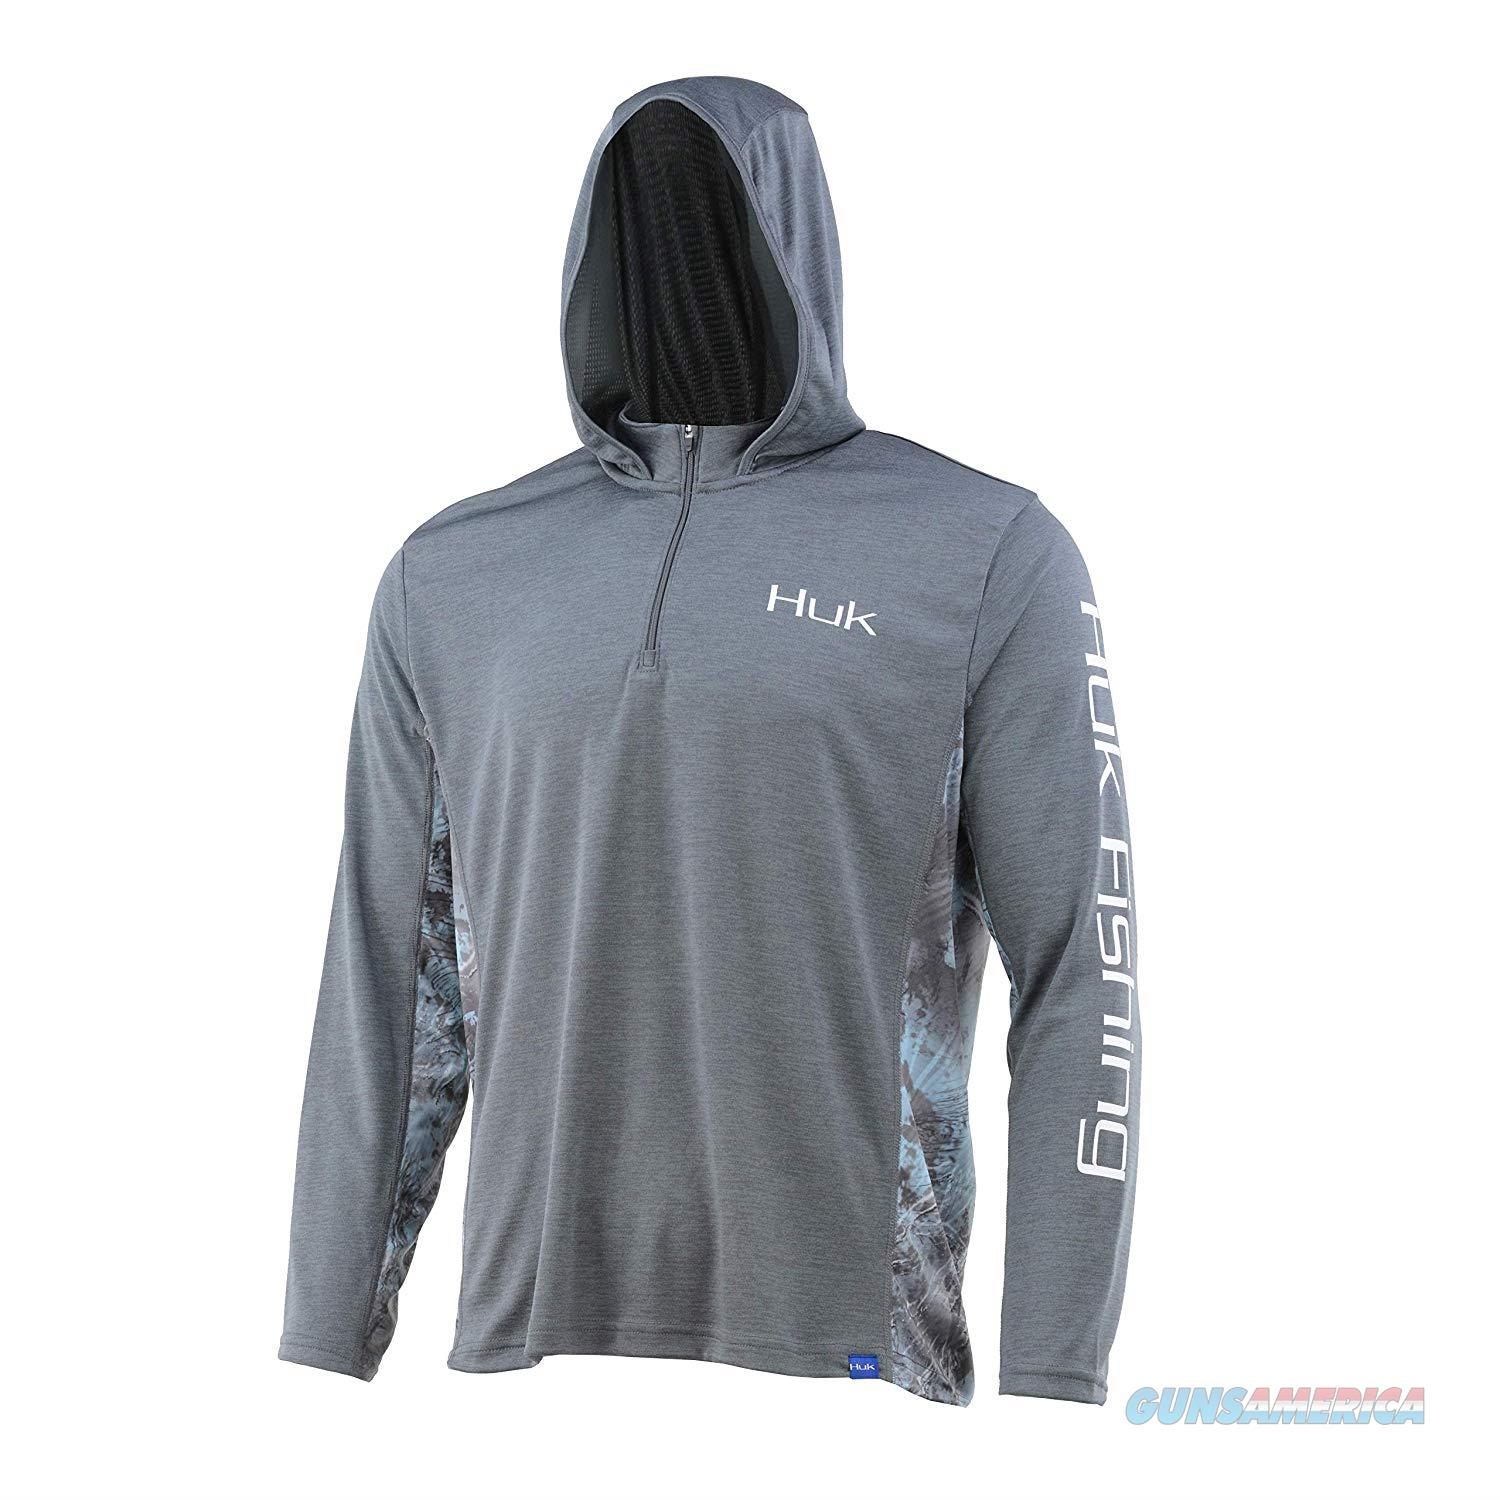 Huk Cold Weather Icon Hoodie Grey 2XL  Non-Guns > Hunting Clothing and Equipment > Clothing > Shirts